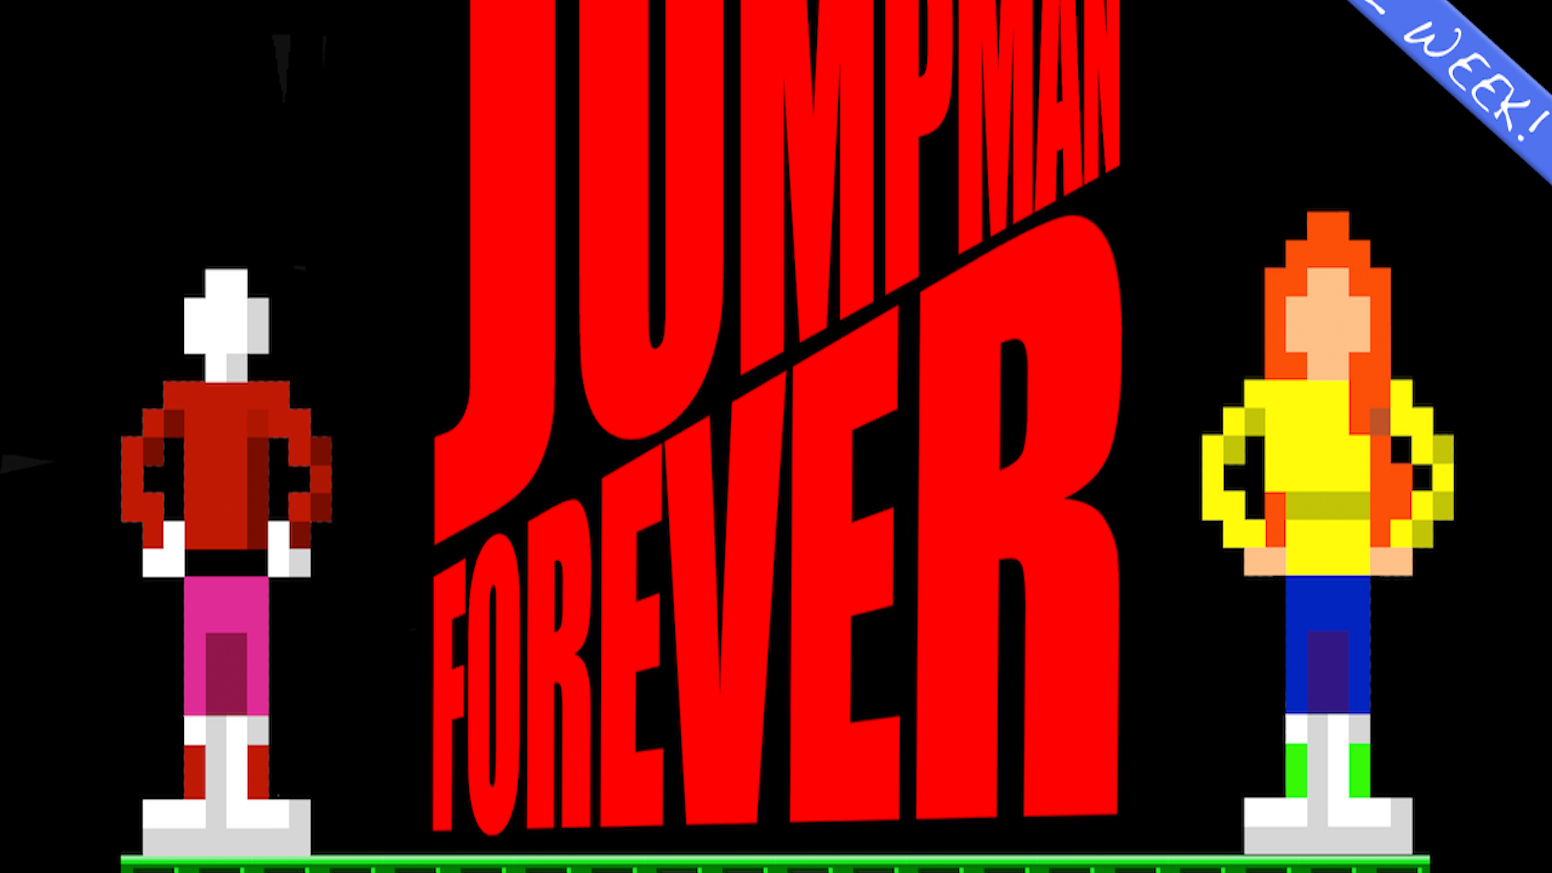 Truly classic games never die. The original Jumpman game still has fans, and now, we're updating it while sticking to it's core!